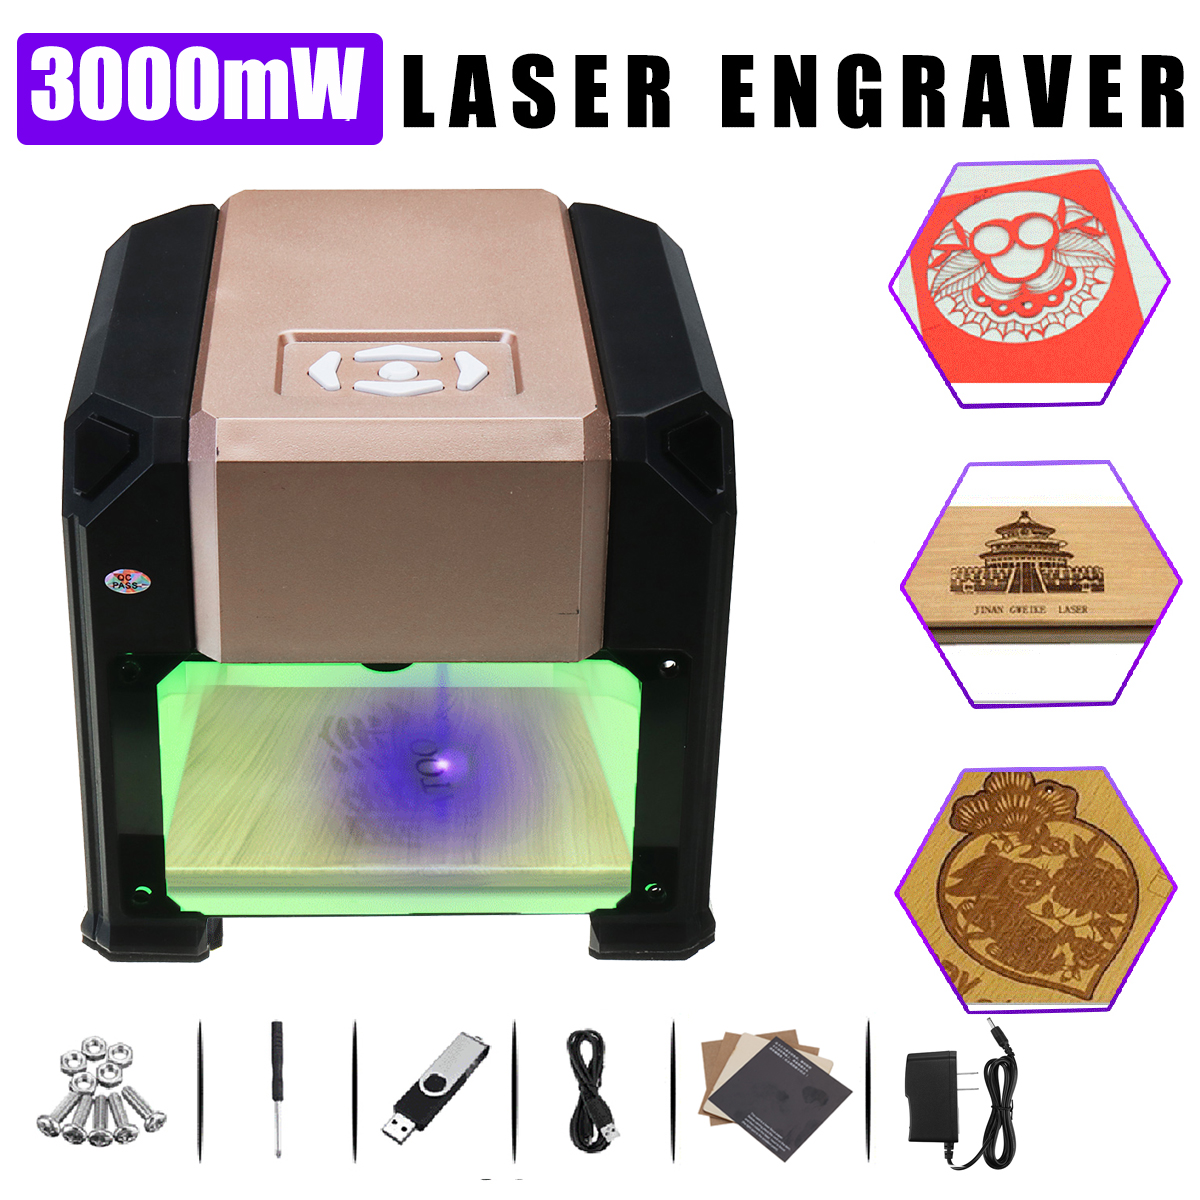 3000mW USB Laser Engraver Printer Cutter Carver DIY Logo Mark Laser CNC Cut Engraving Carving Machine